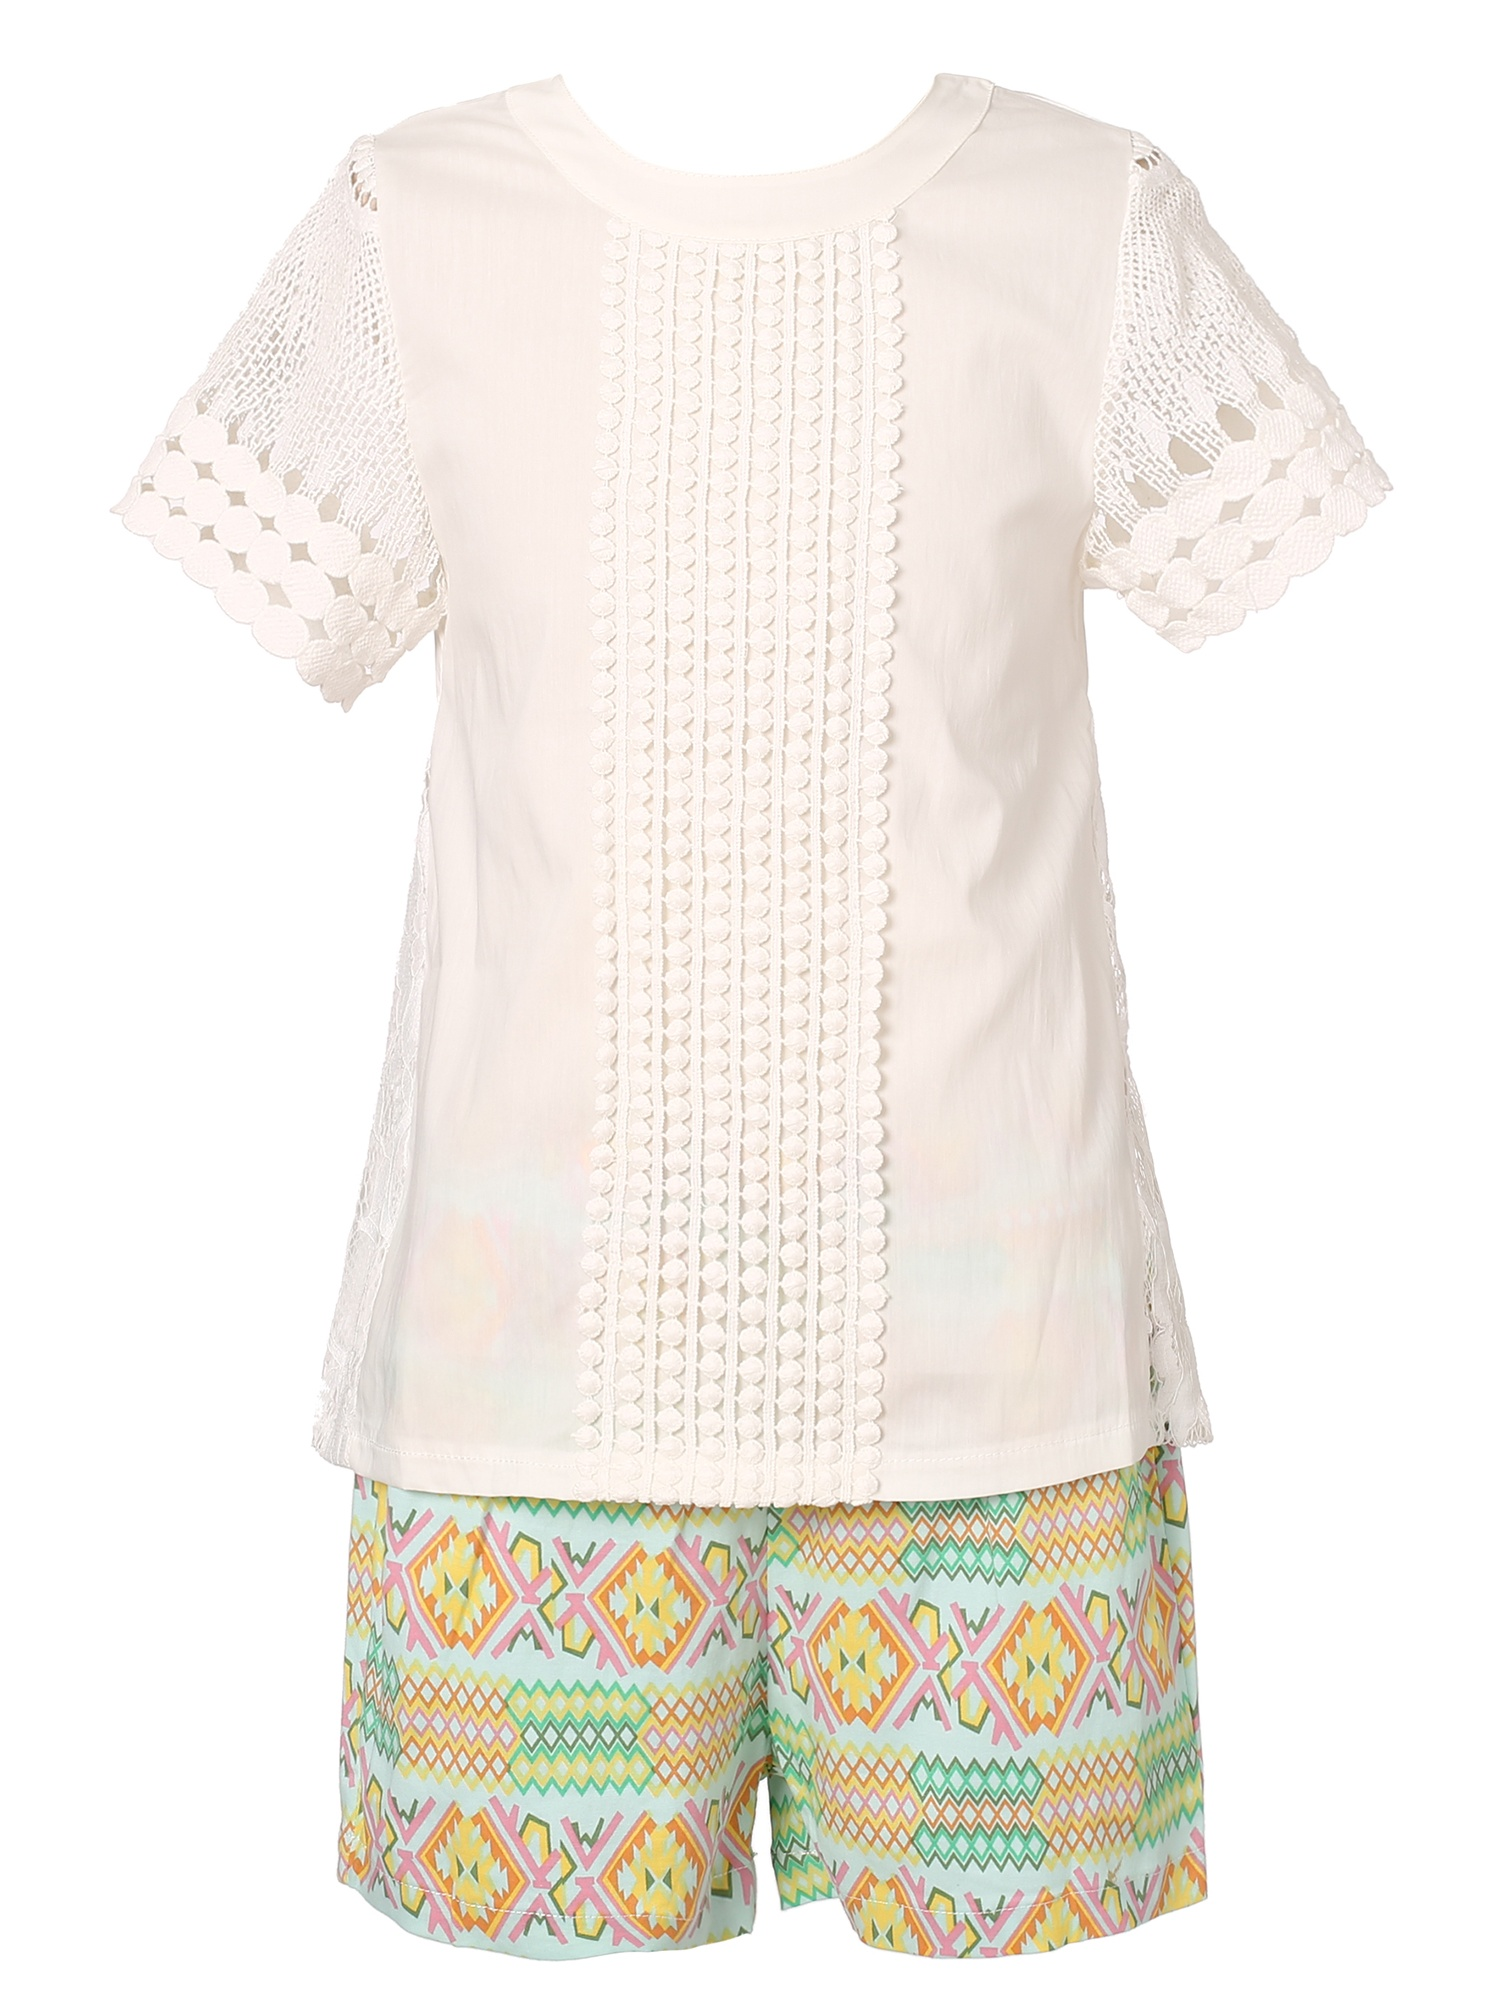 Richie House Girls' Summer Two-piece with Shorts RH1932